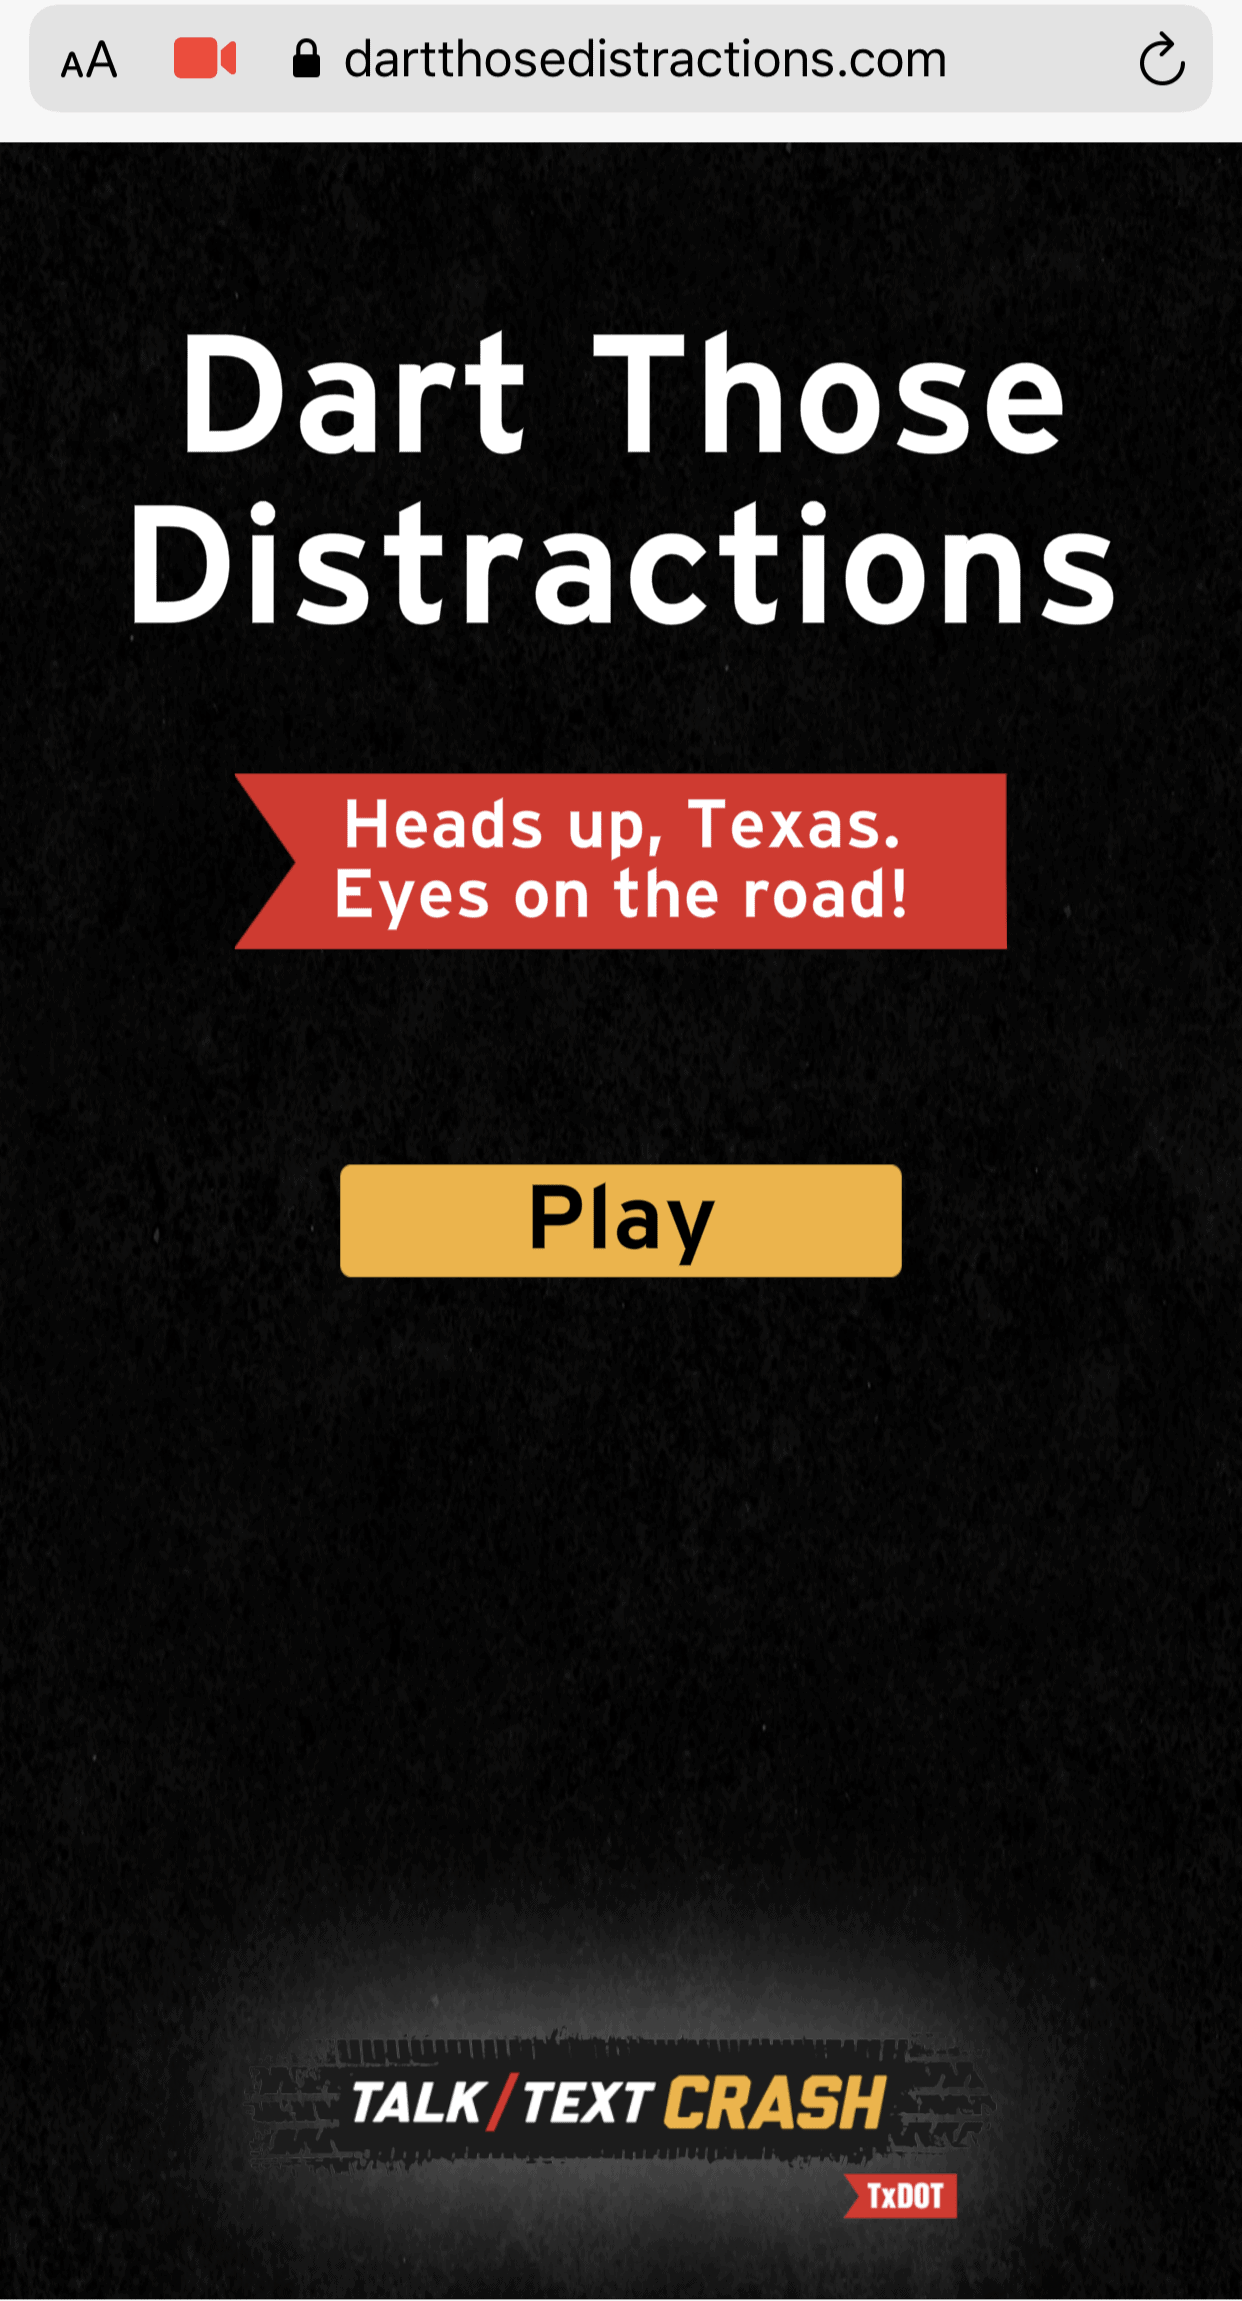 Dart Those Distractions App